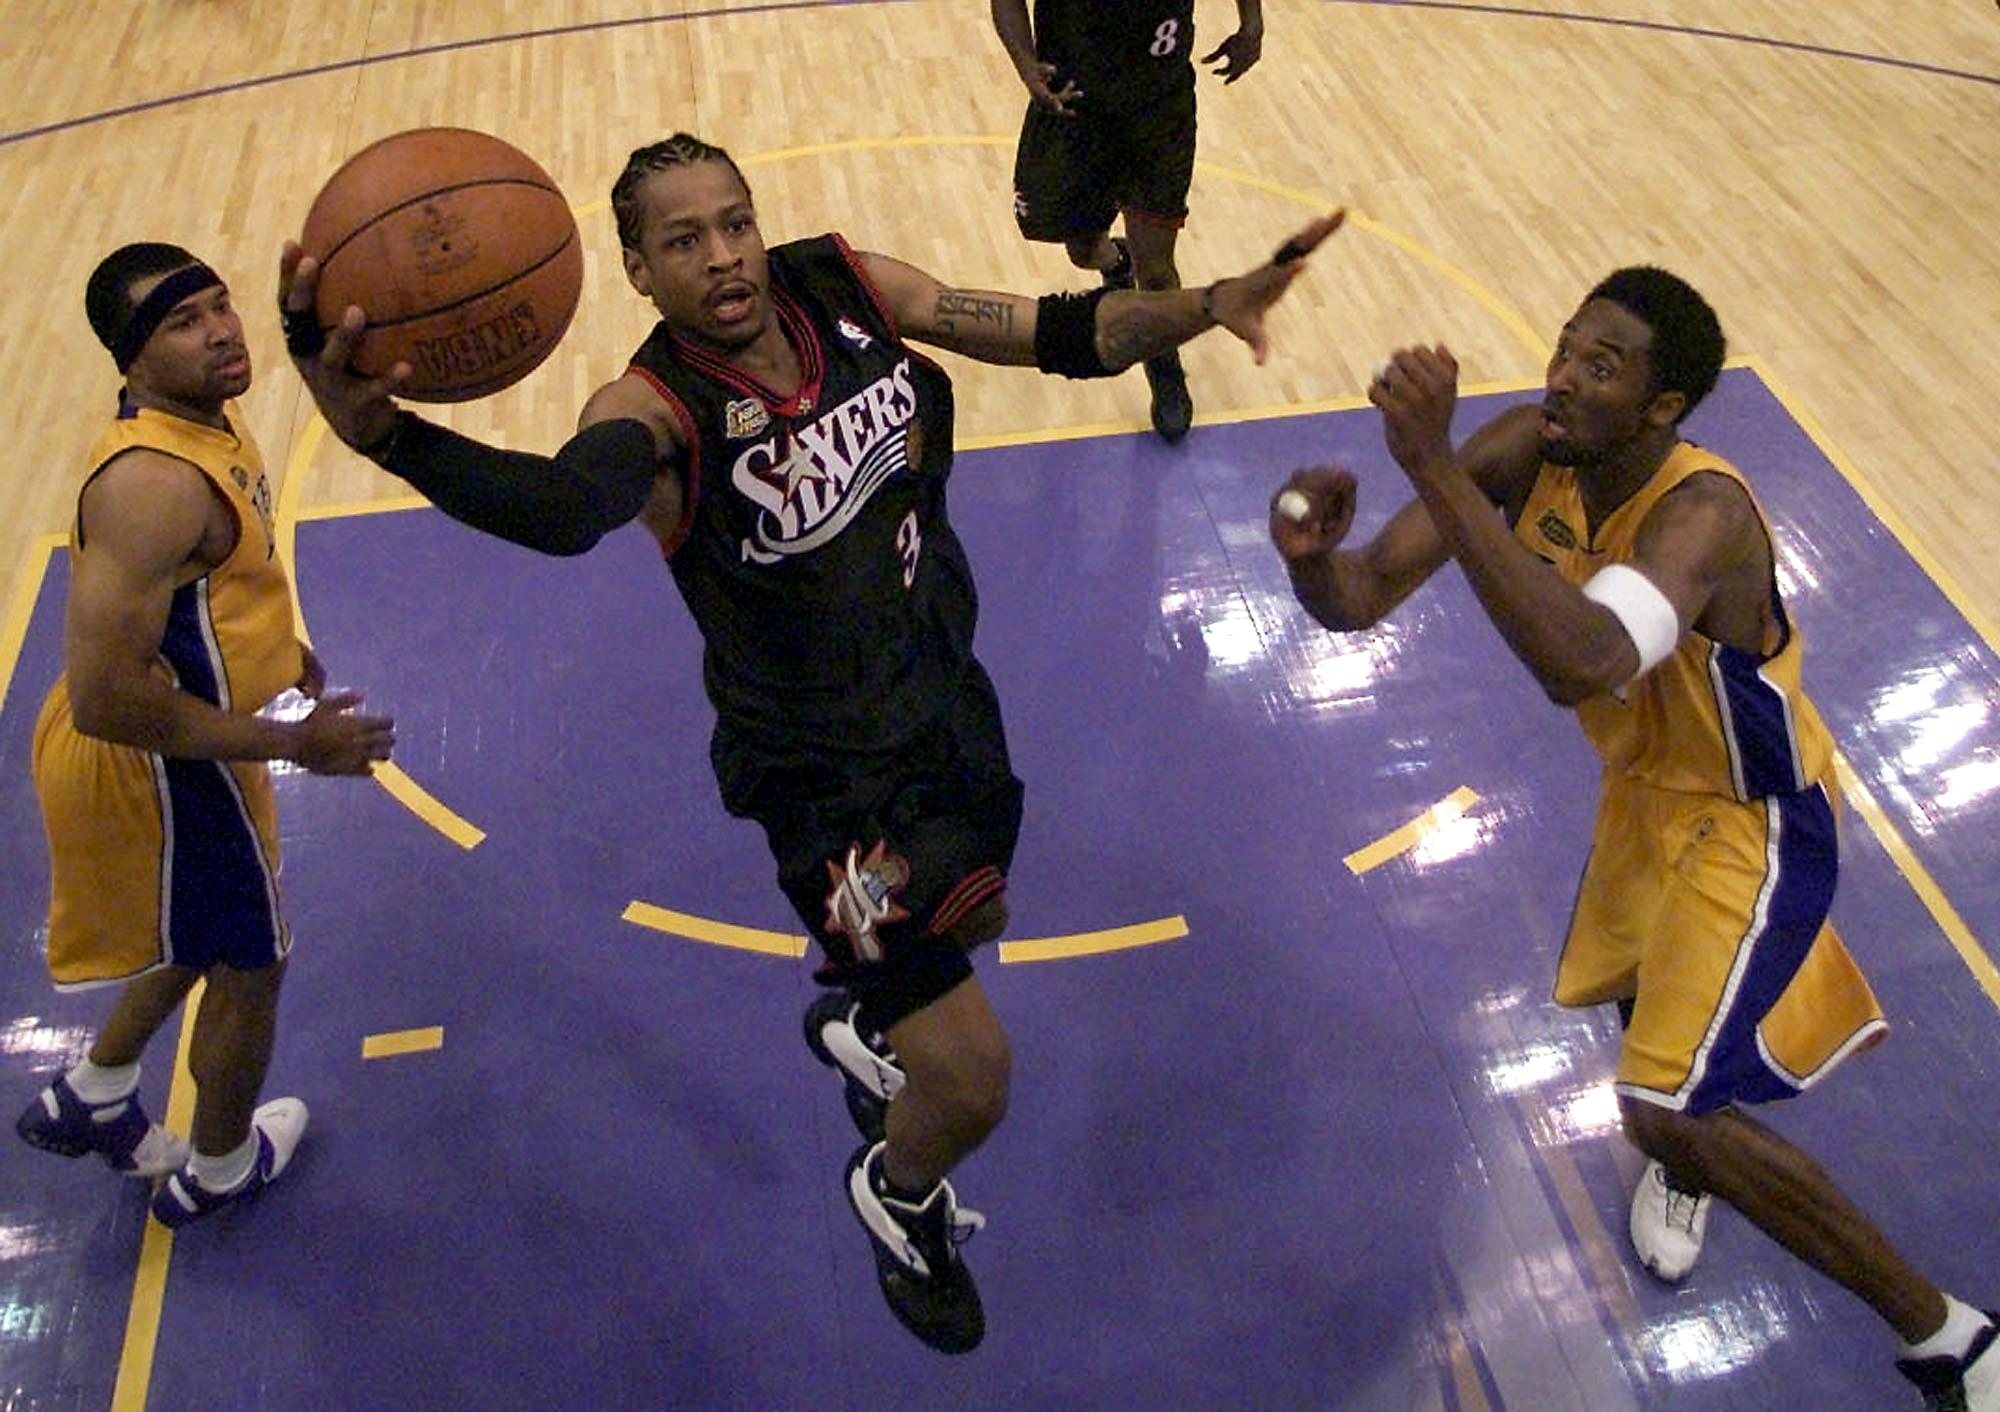 LOS ANGELES, UNITED STATES: Allen Iverson (C) of the Philadelphia 76ers goes in for a lay-up between Derek Fisher (L) and Kobe Bryant (R) of the Los Angeles Lakers 06 June, 2001 during the NBA Finals Game 1 at the Staples Center in Los Angeles. The 76ers won 107-101 in overtime to take a 1-0 lead on the best-of-seven game series. AFP PHOTO/Jeff HAYNES (Photo credit should read JEFF HAYNES/AFP/Getty Images)